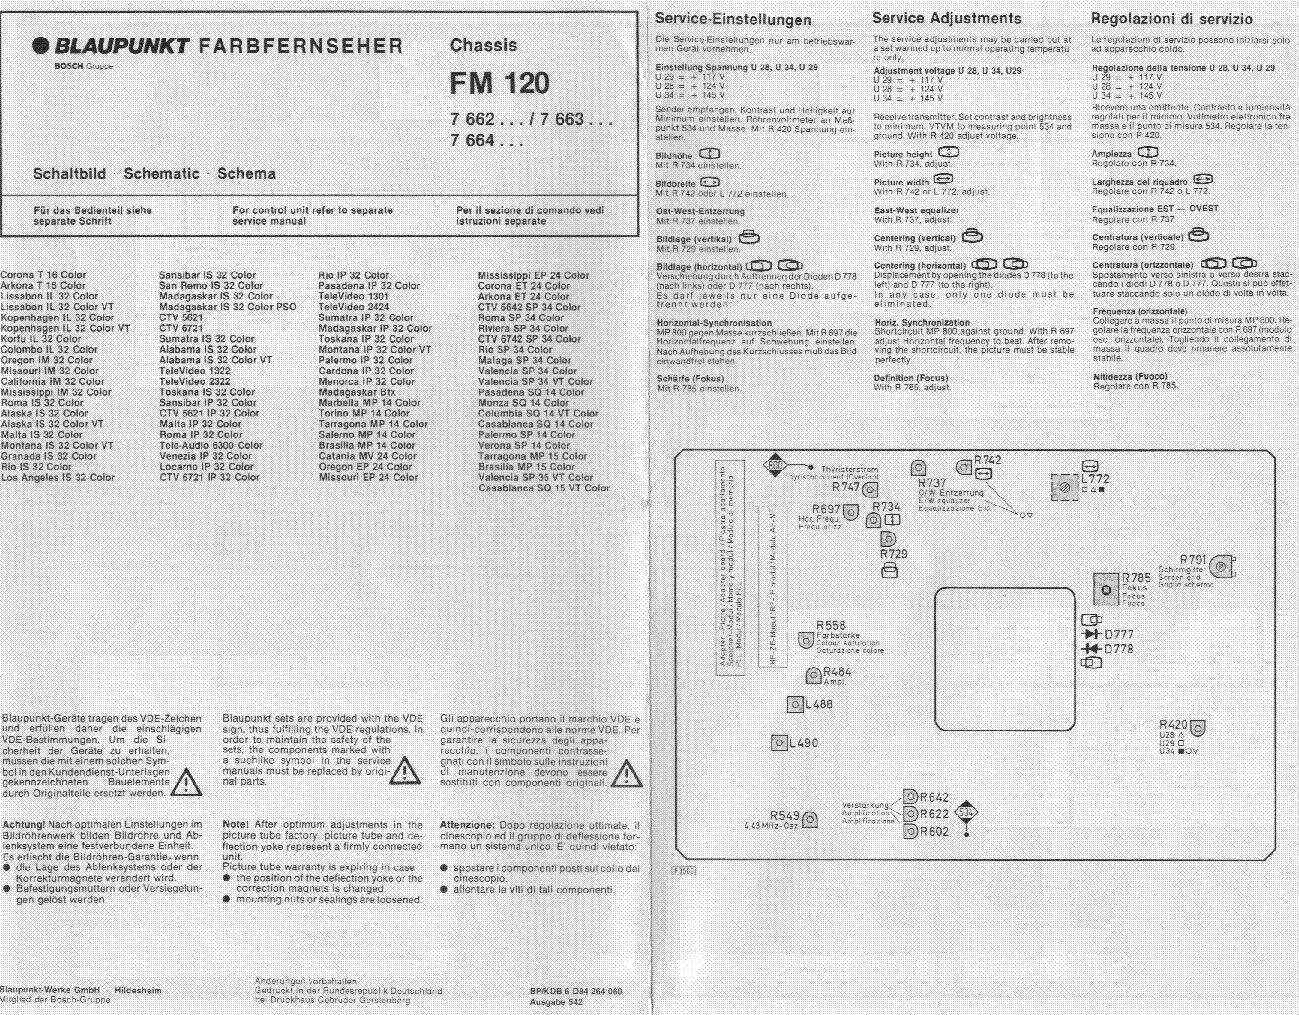 BLAUPUNKT TV FM100-21P Service Manual free download